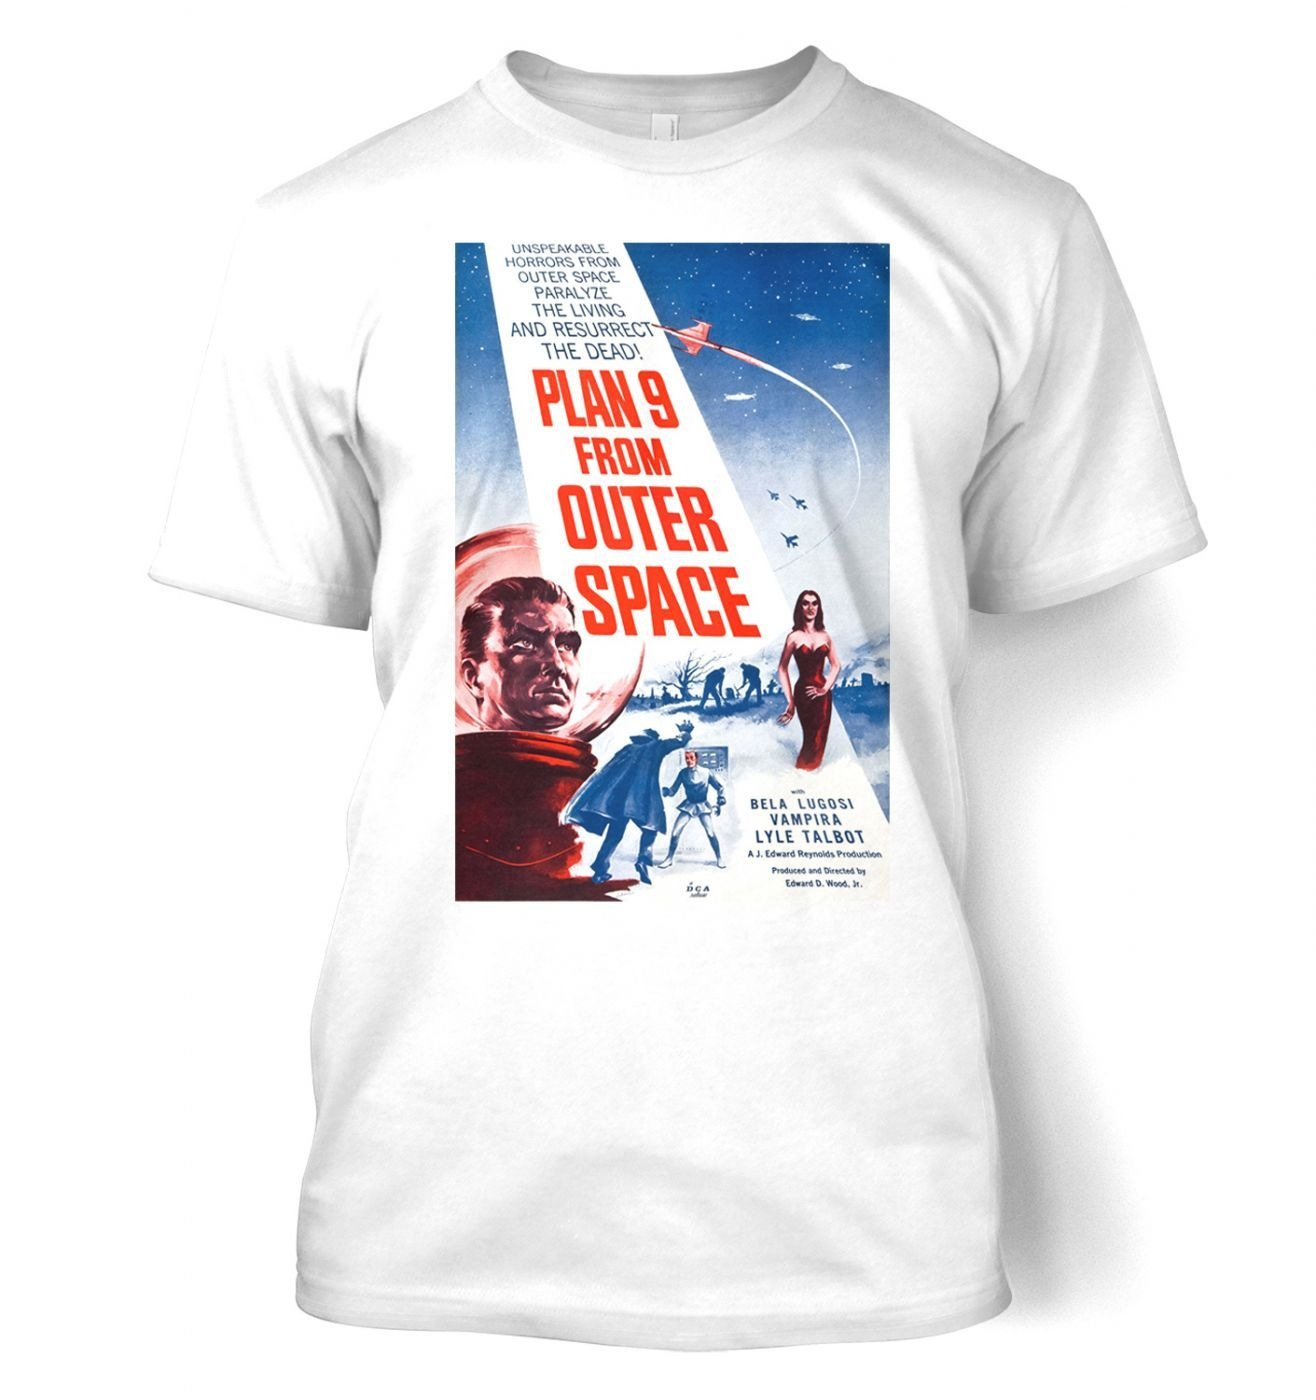 Plan 9 From Outer Space men's t-shirt